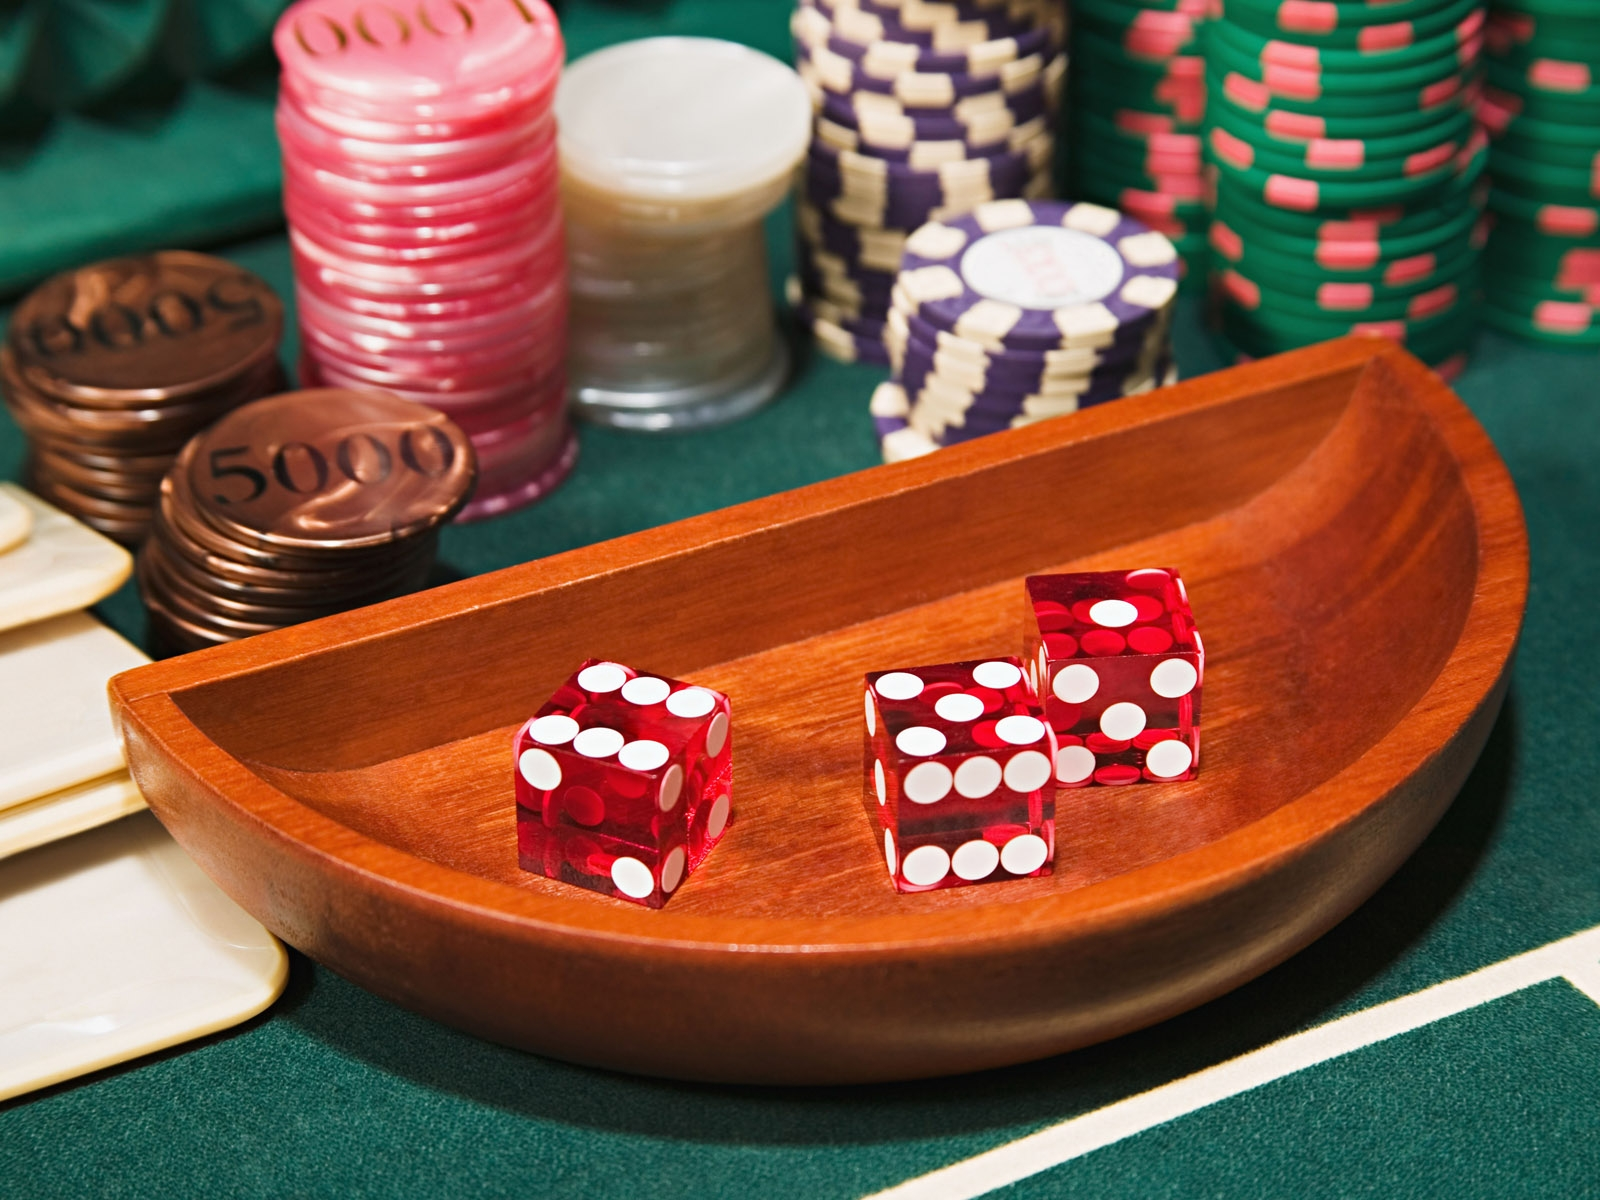 Vegas Casino Online Download - Games, Bonuses, And How To Download